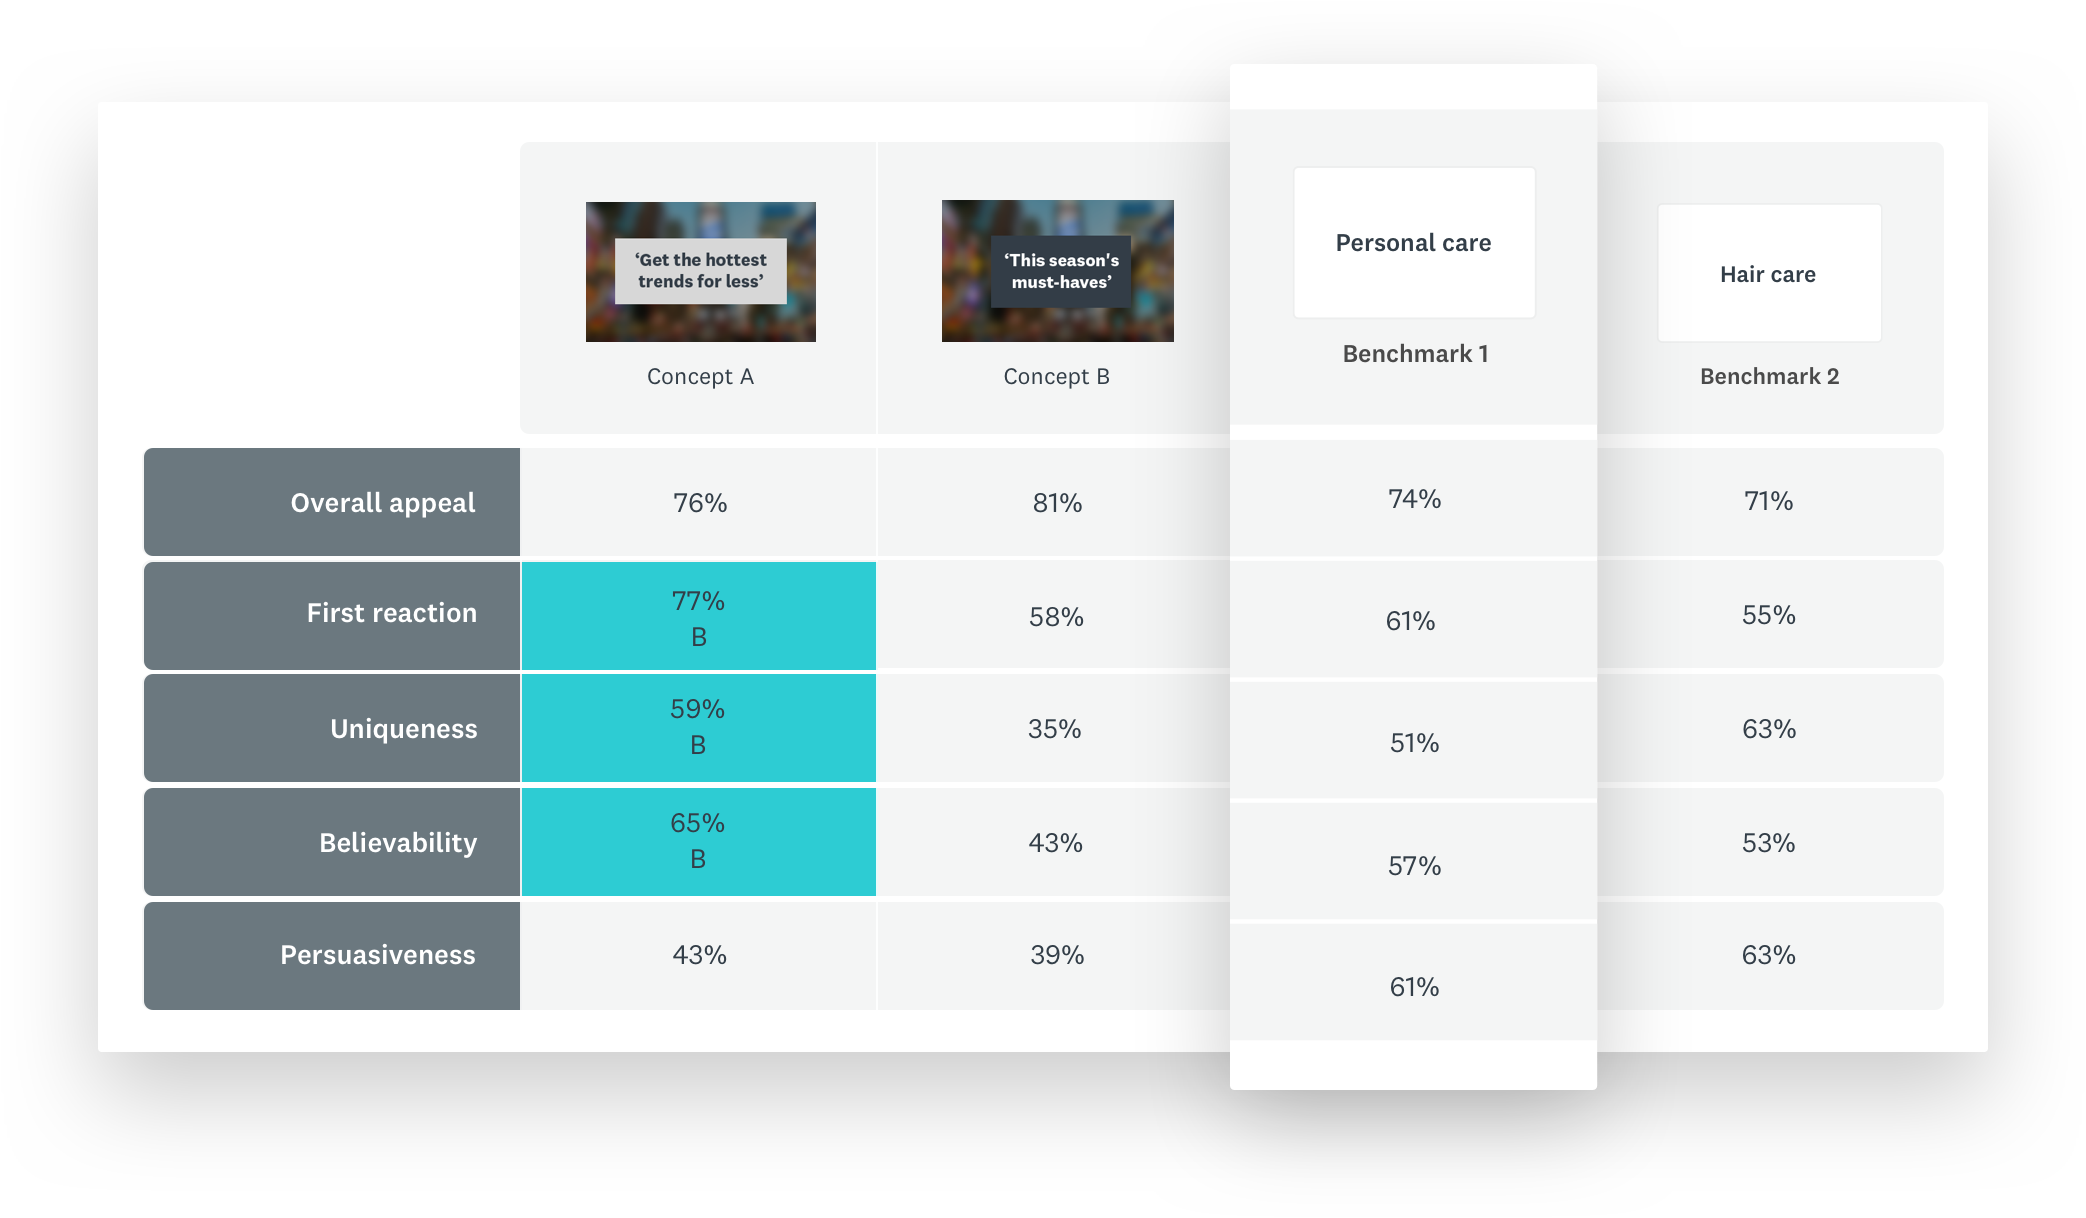 Scorecard comparing two messaging and claims products